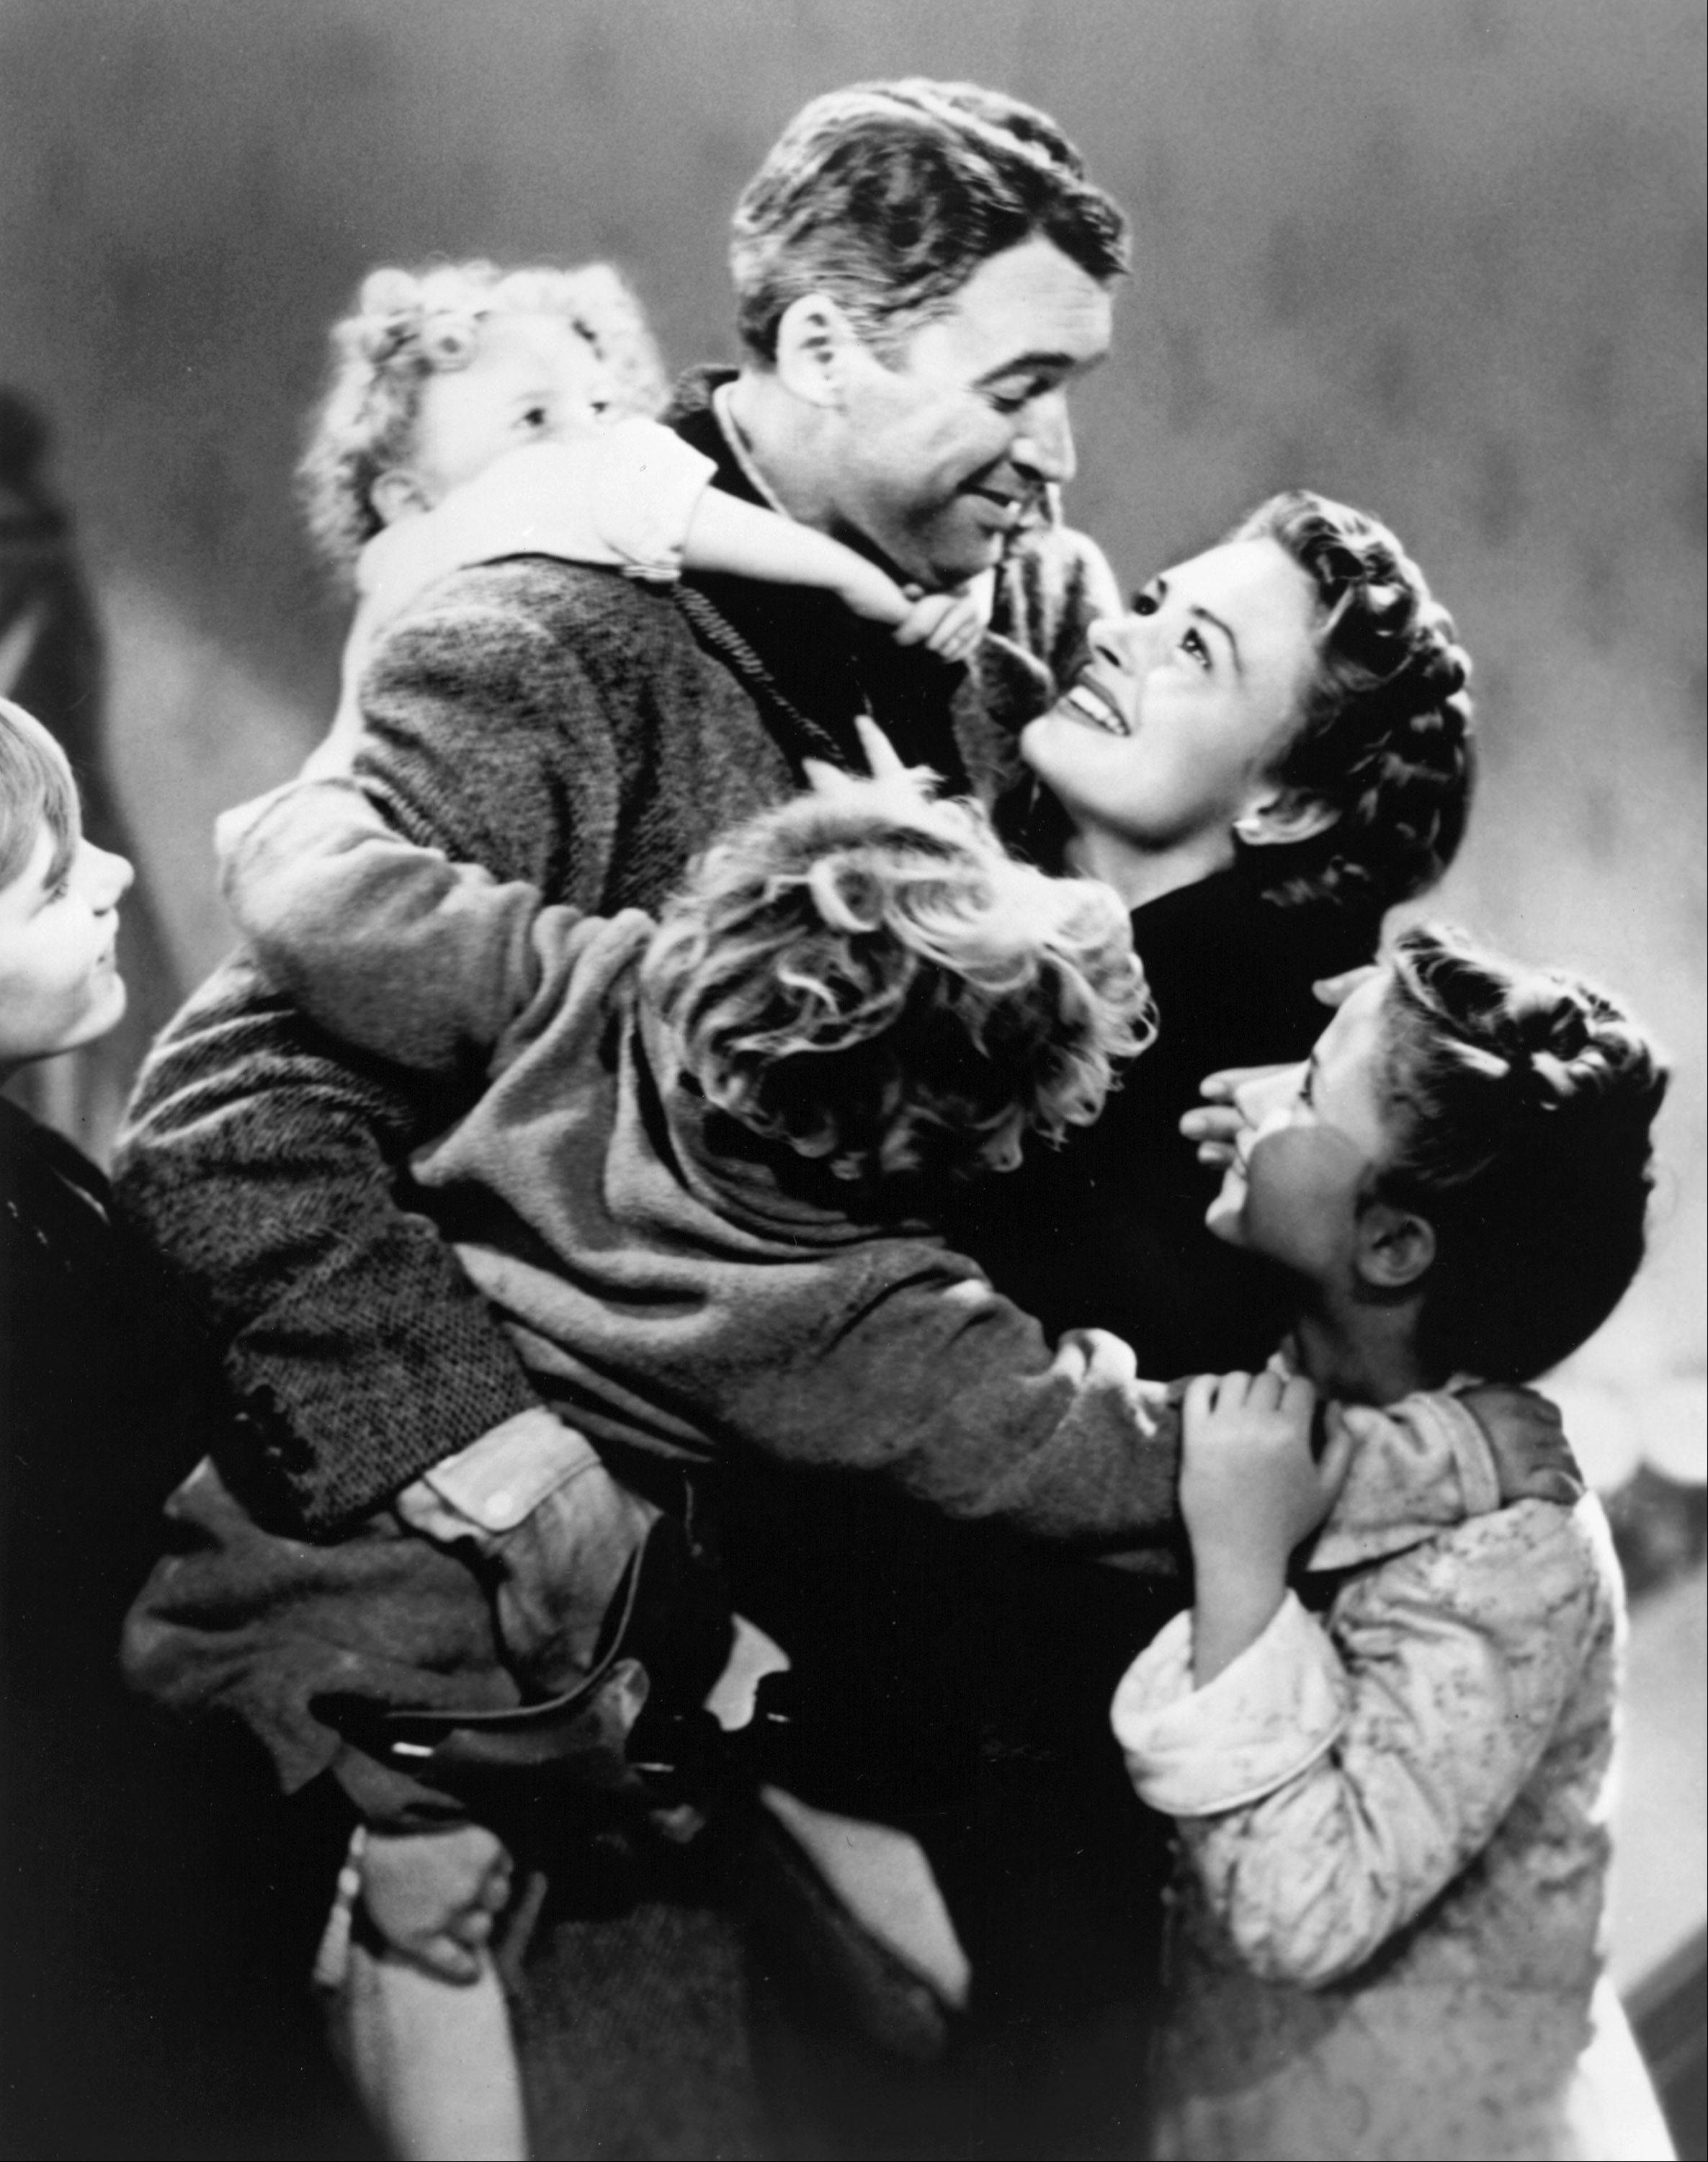 """It's a Wonderful Life,"" starring James Stewart and Donna Reed, will air on NBC at 7 p.m. on Christmas Eve."